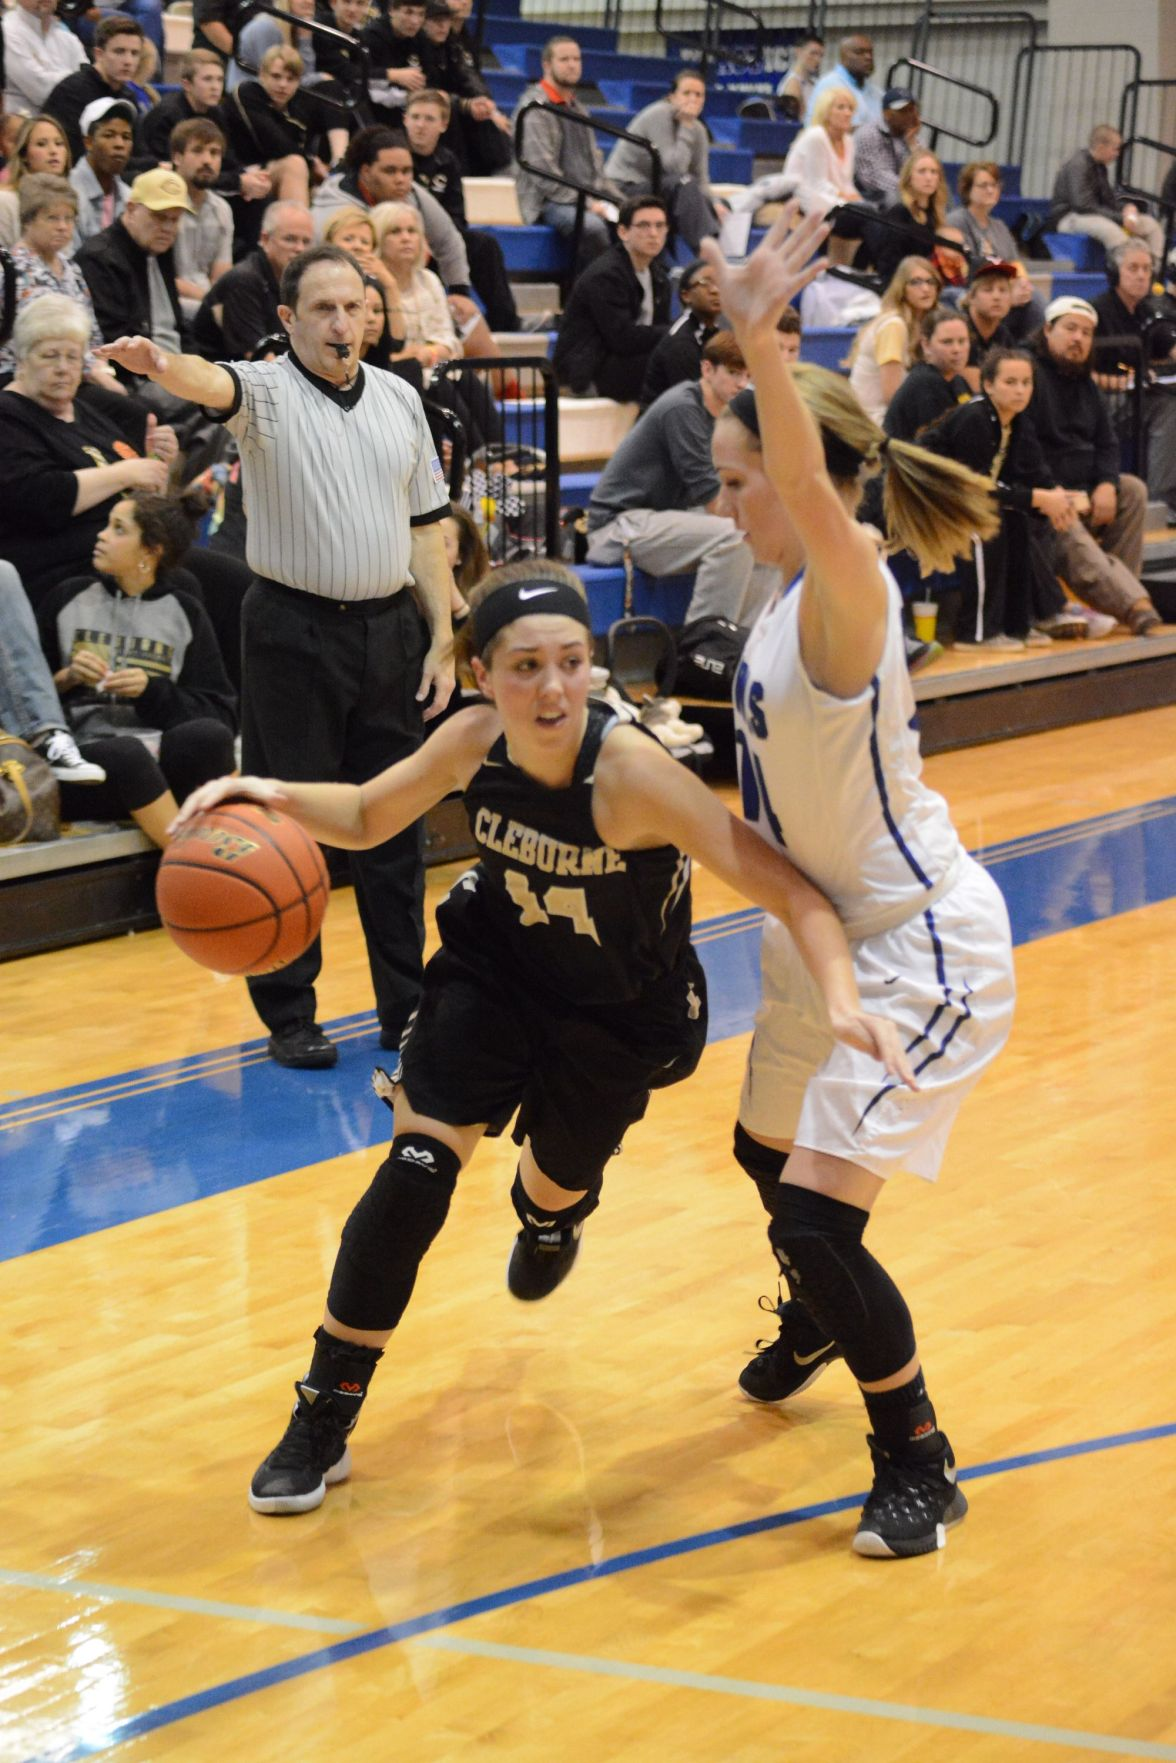 Playoff Races Heating Up For Cleburne Boys Girls Basketball